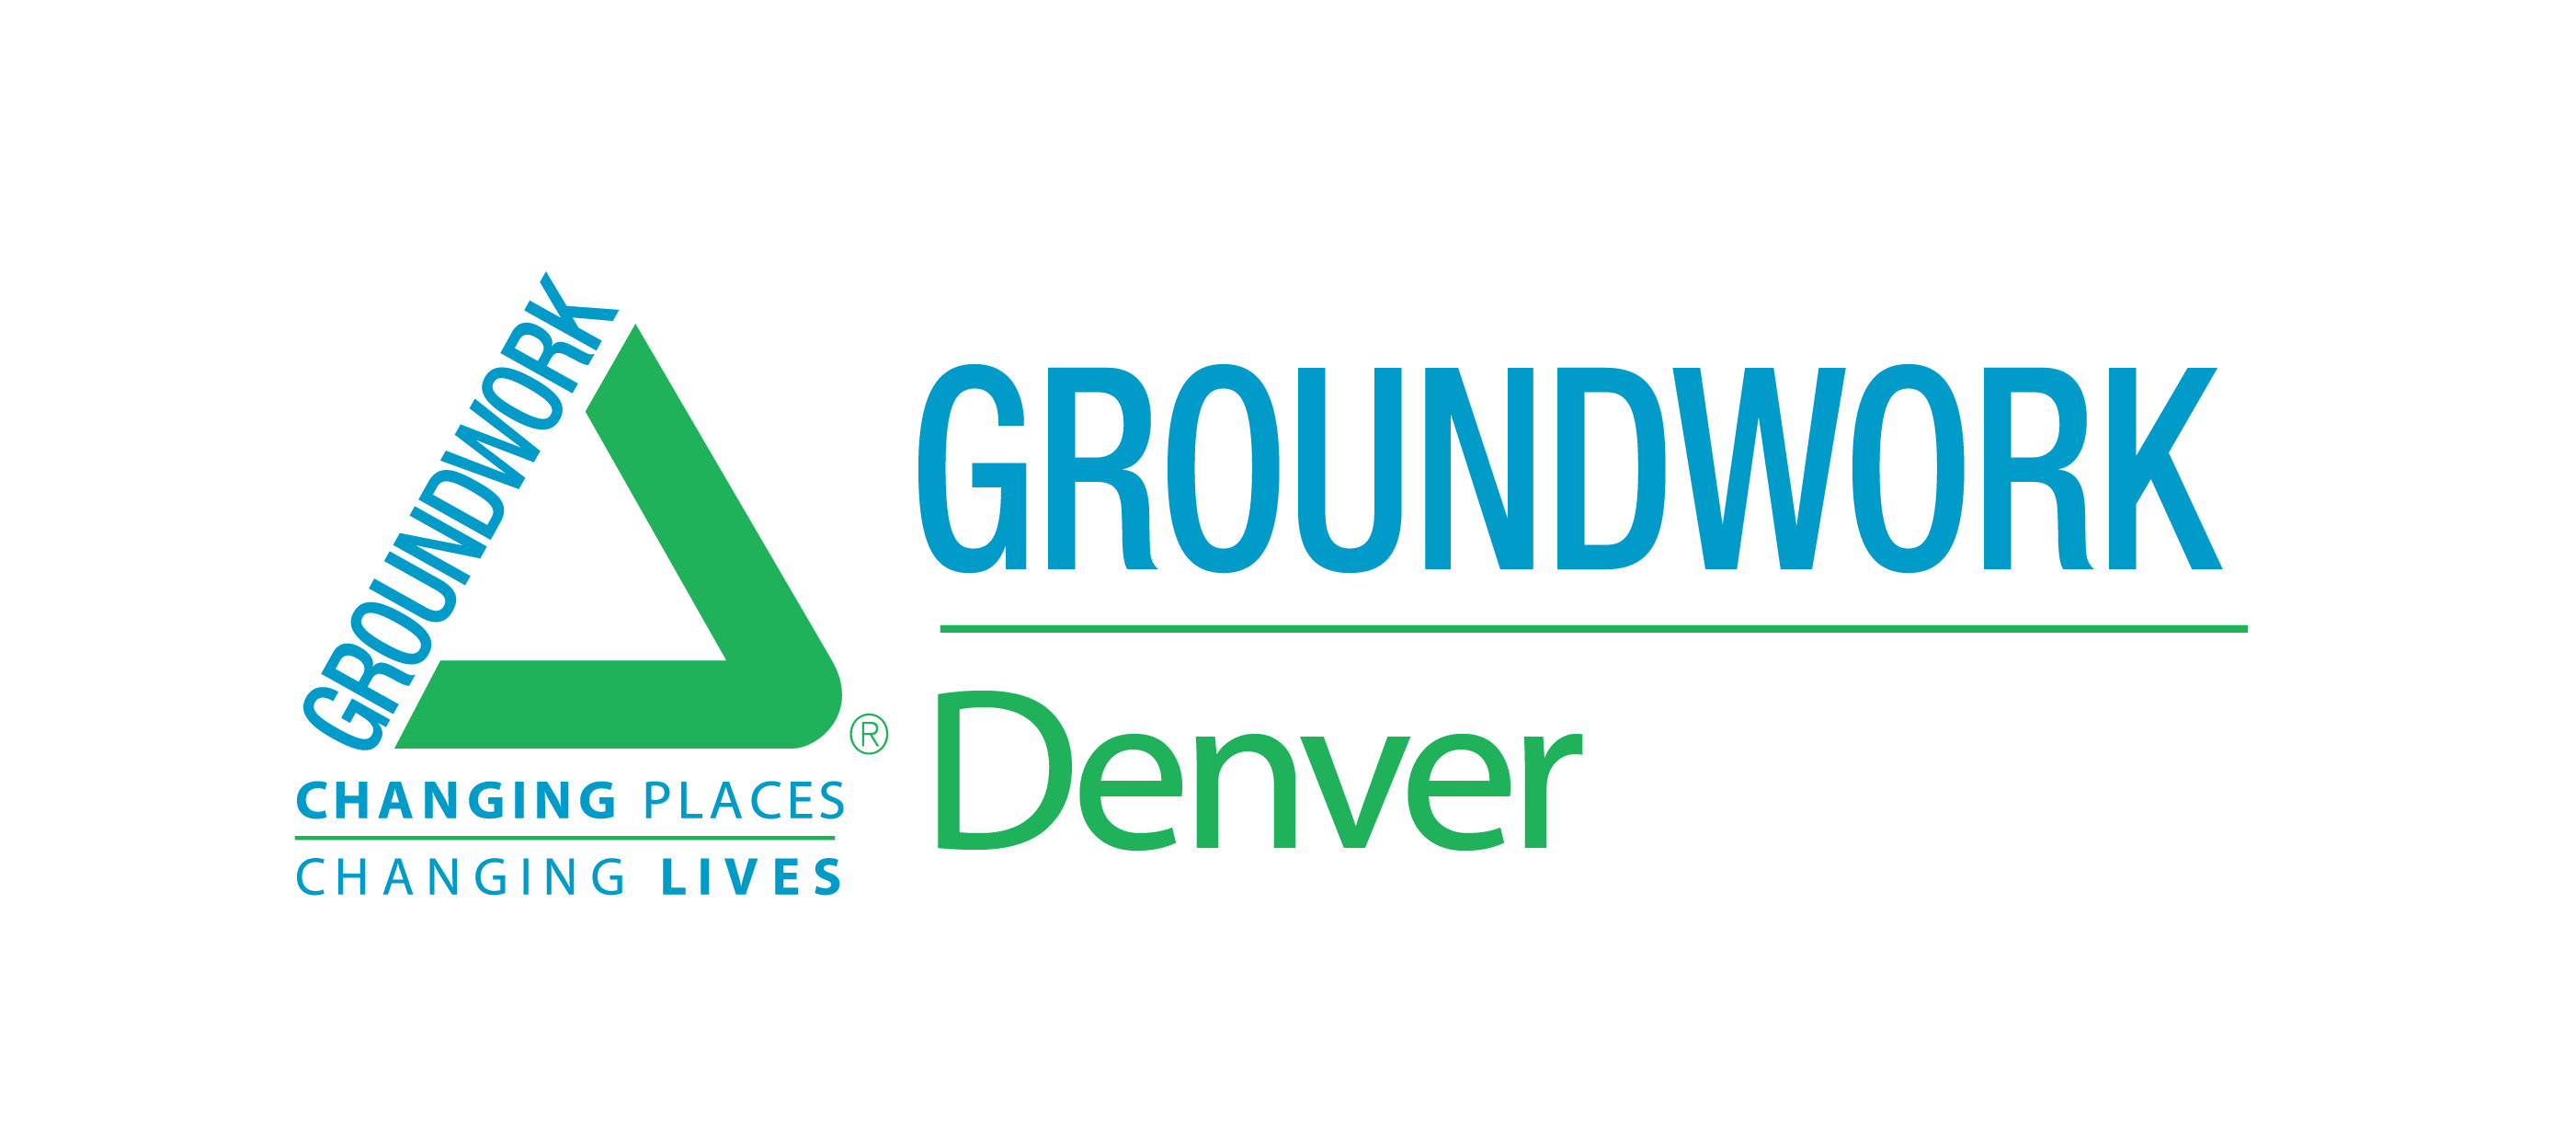 Groundwork Denver